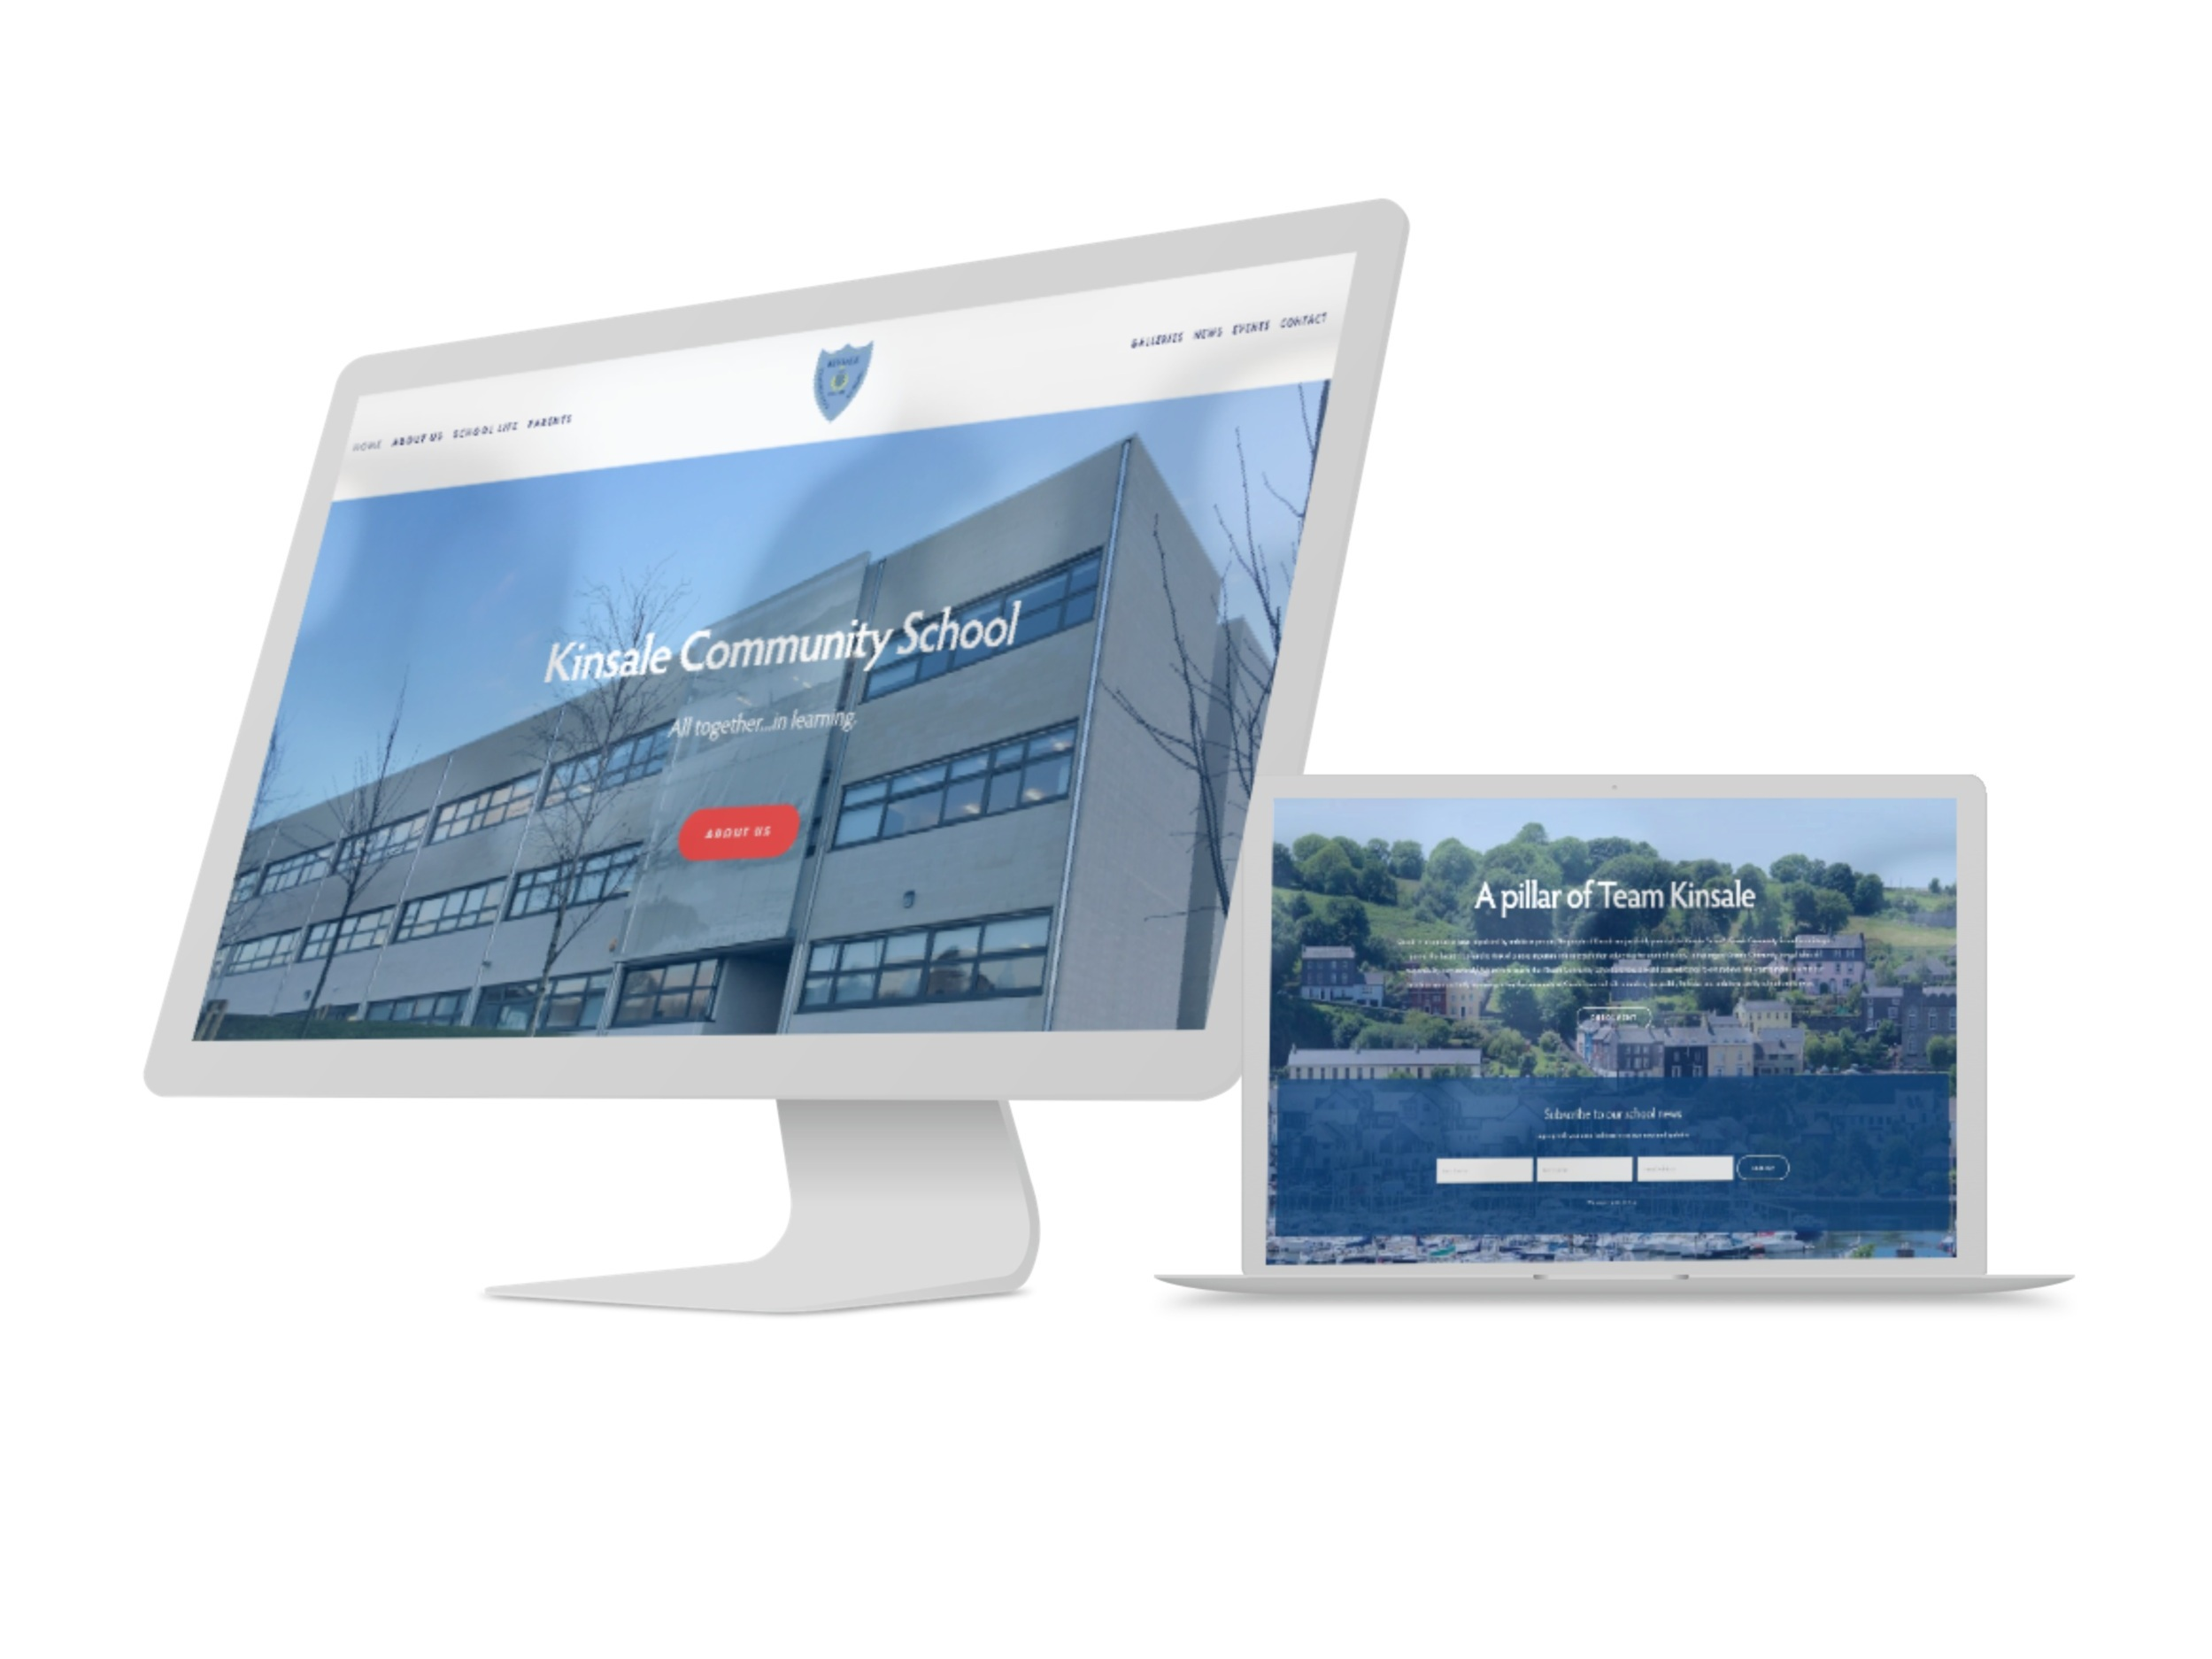 Kinsale CS - website - Adaptive custom website & video production with video background headers, e-news, event calendar, TY news & events